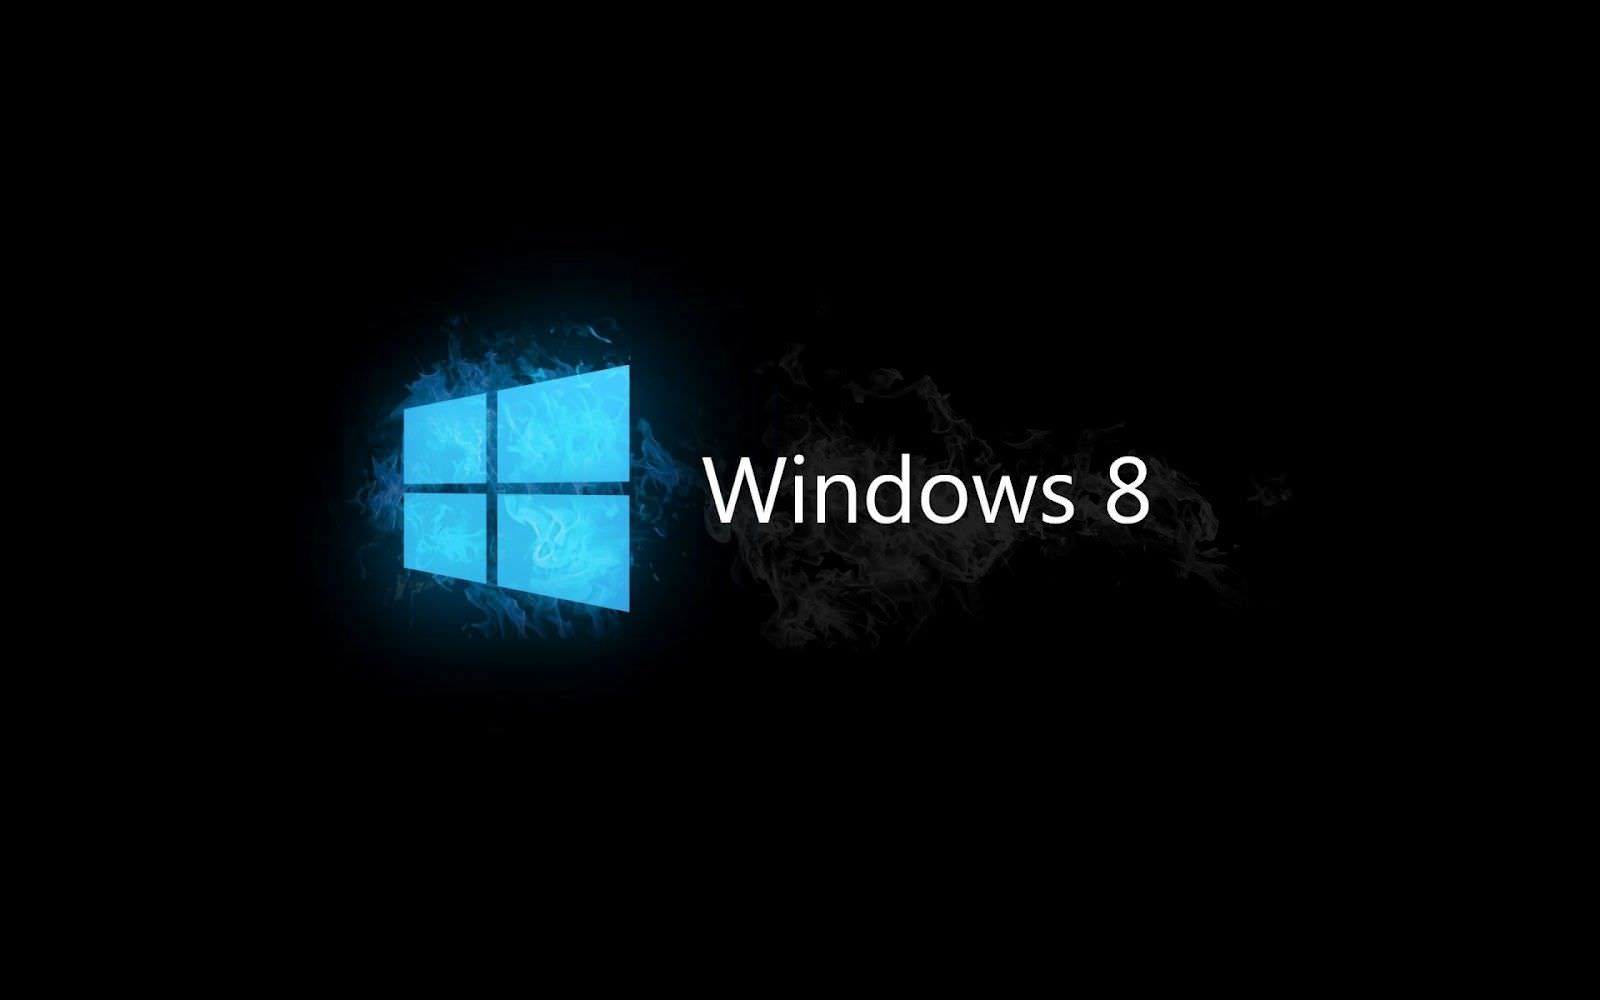 30 3d windows 8 wallpapers images backgrounds pictures for Window design wallpaper